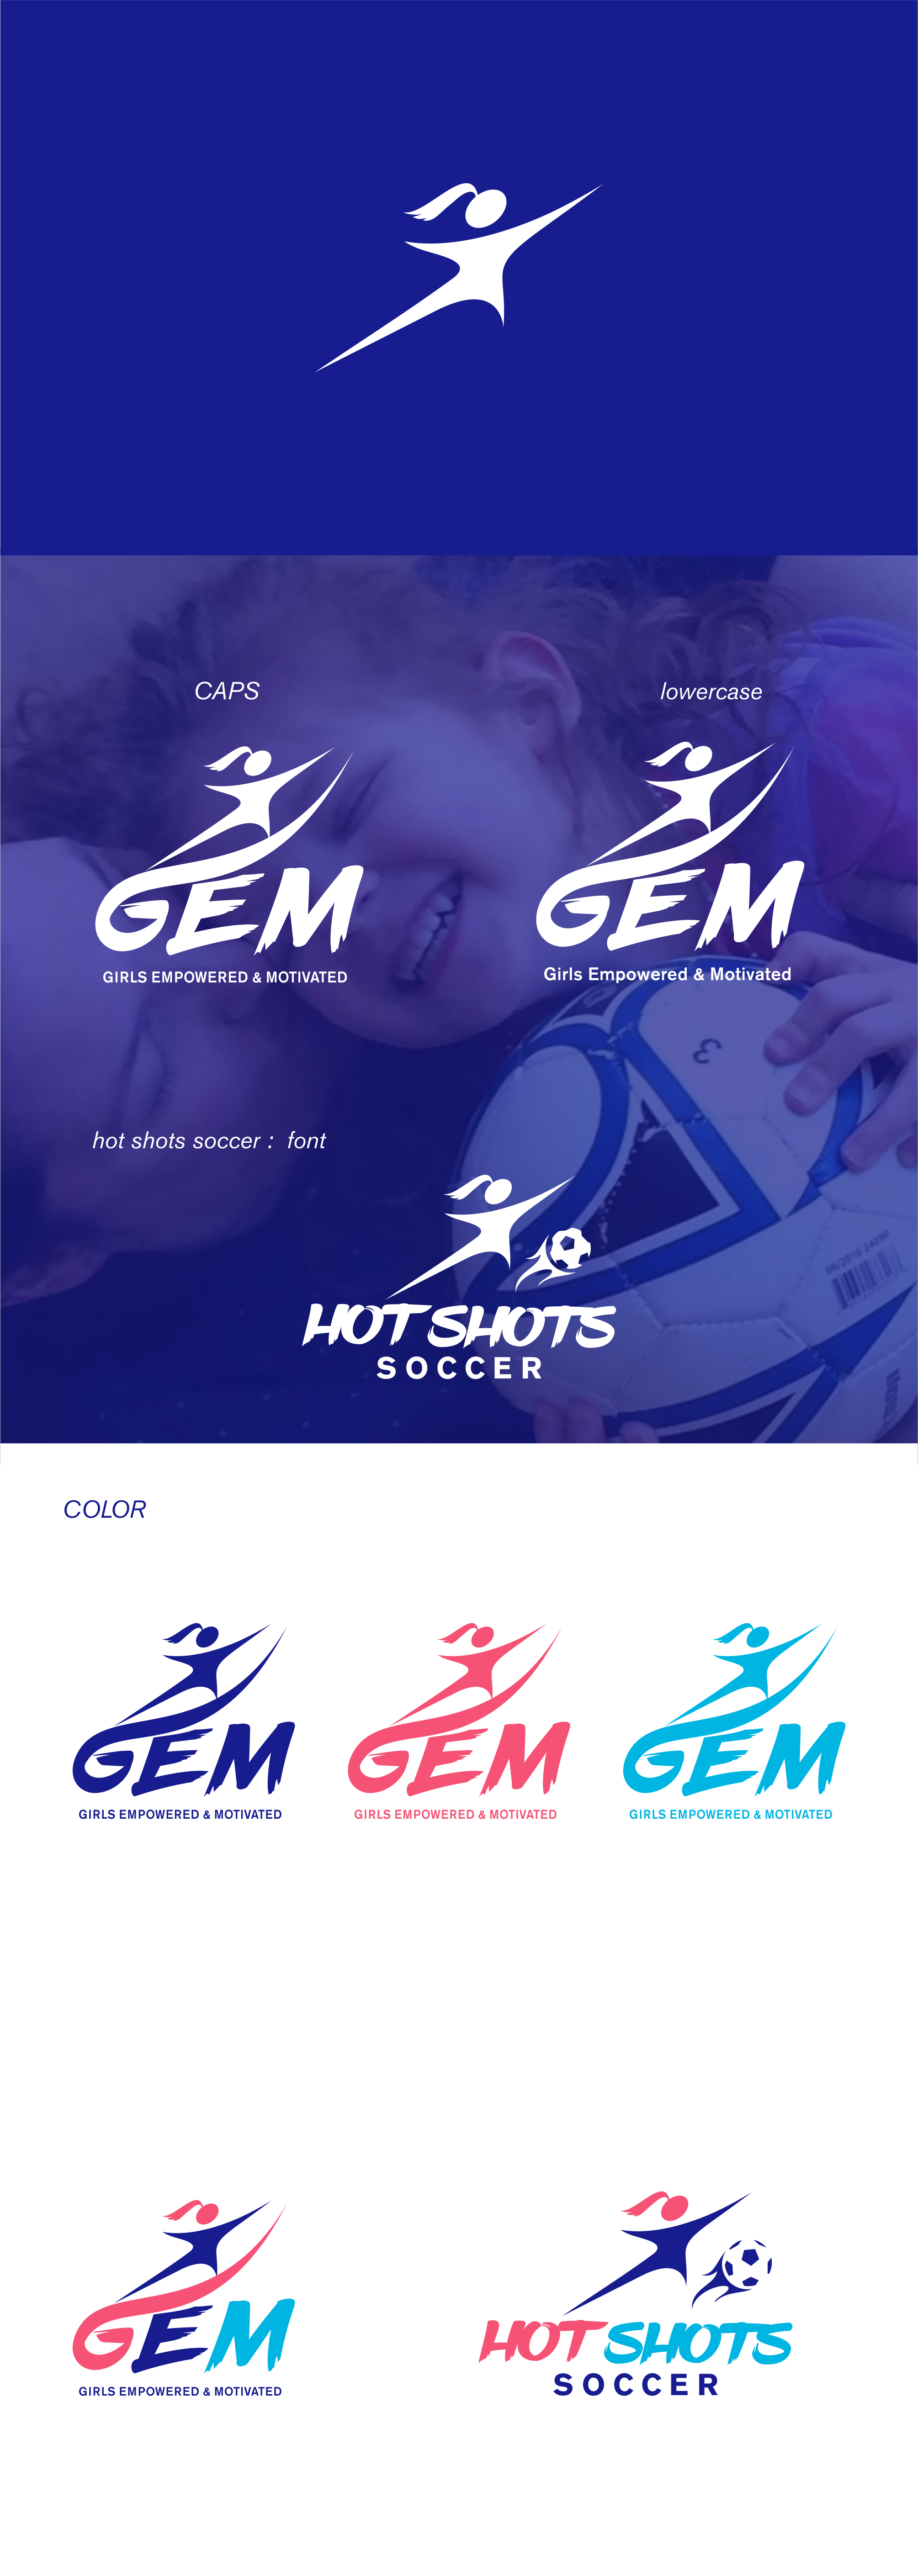 We build girls' self-esteem, love of reading, & athletic skills in creative setting (& need a logo)